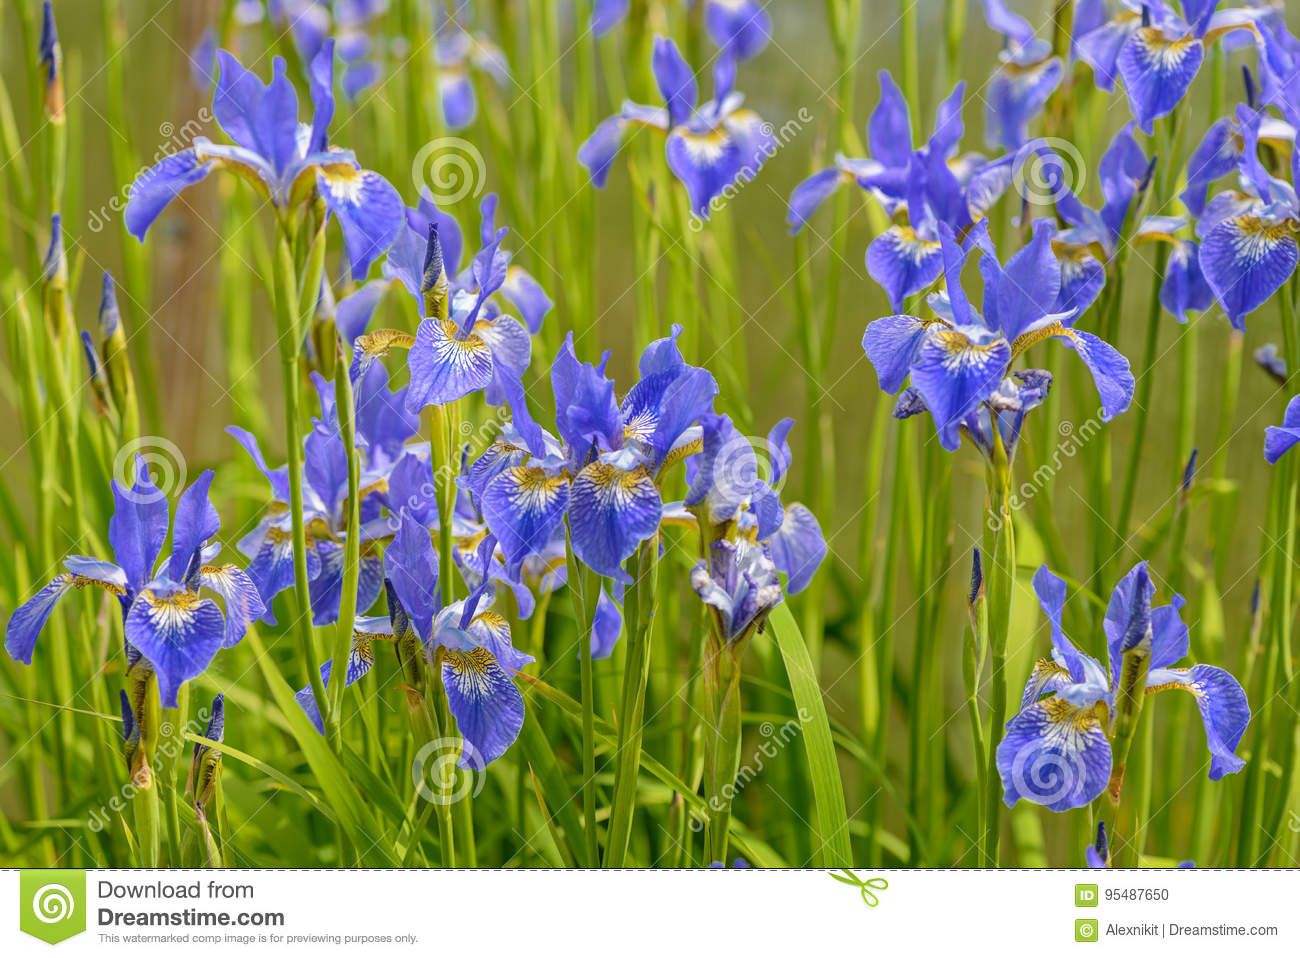 Bright blue iris flowers